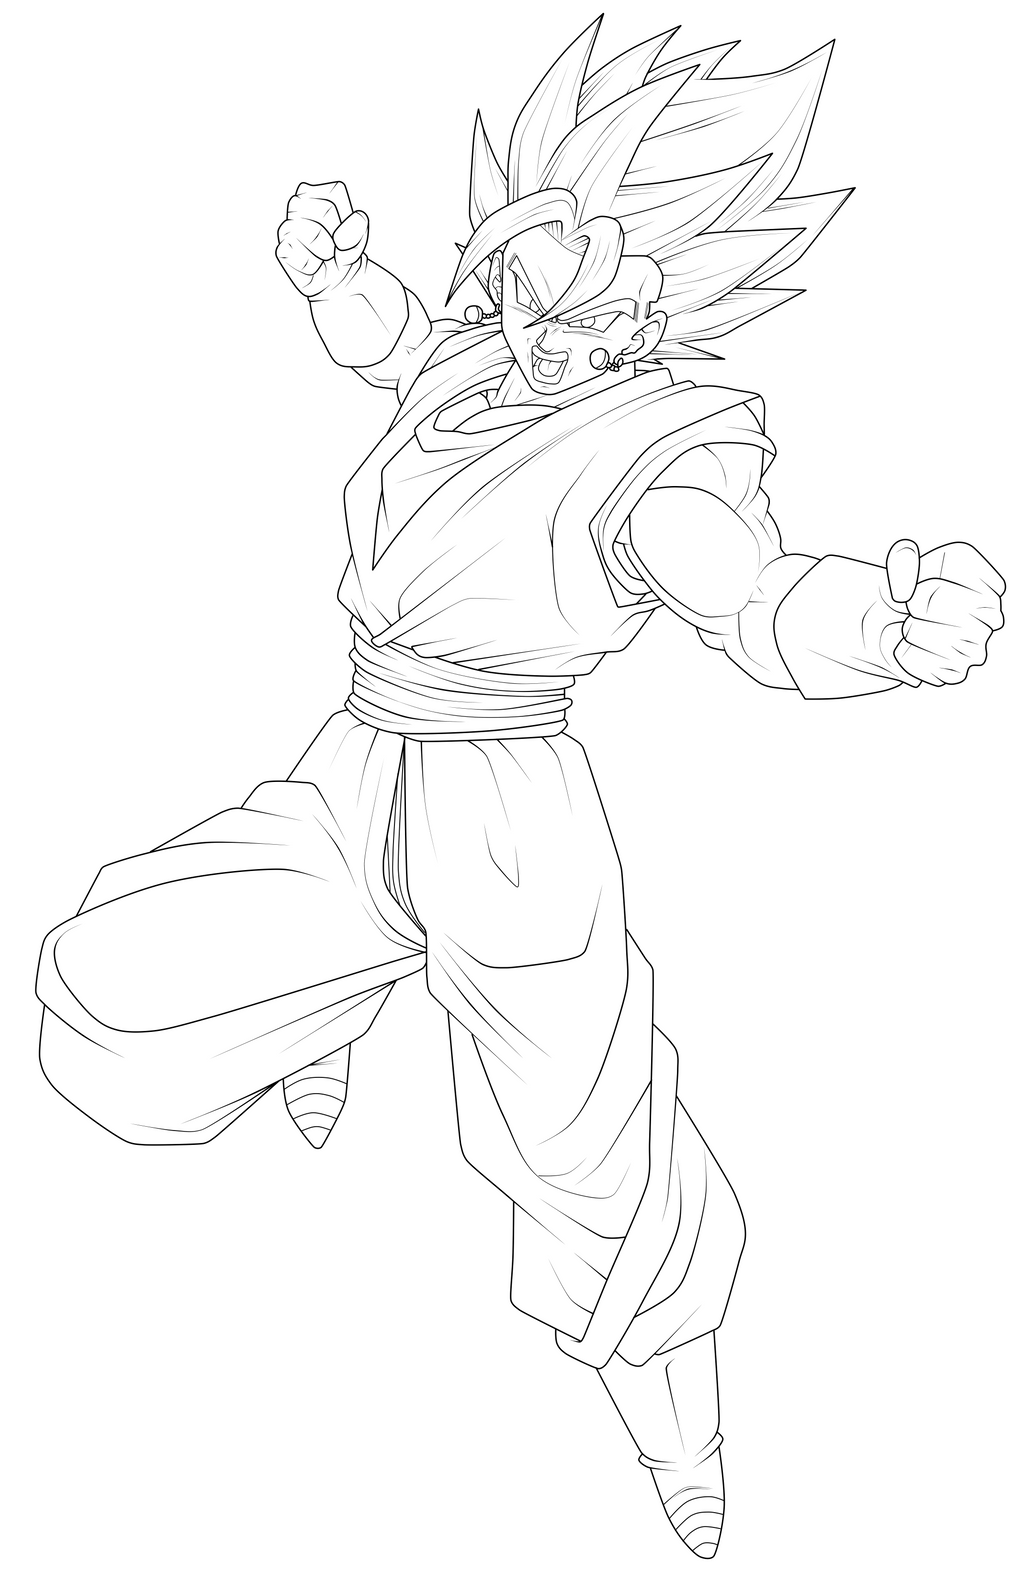 Vegito Super Saiyan Blue Lineart by ChronoFz on DeviantArt